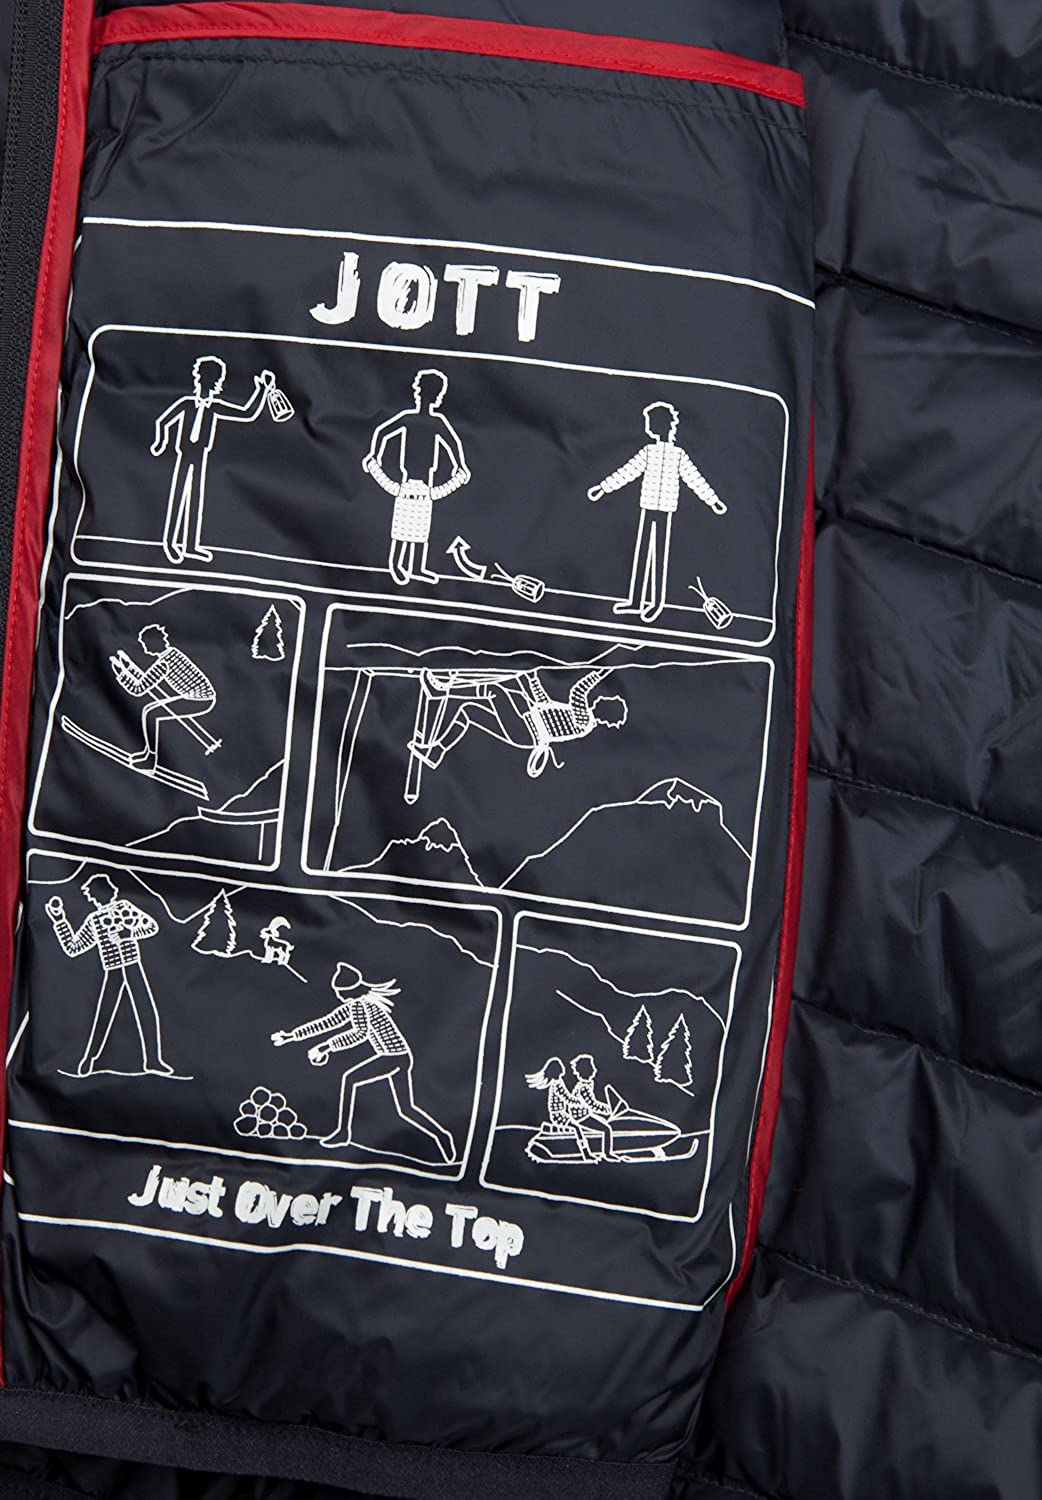 Jott Nico - Sizes : XXL, Colors : Marine